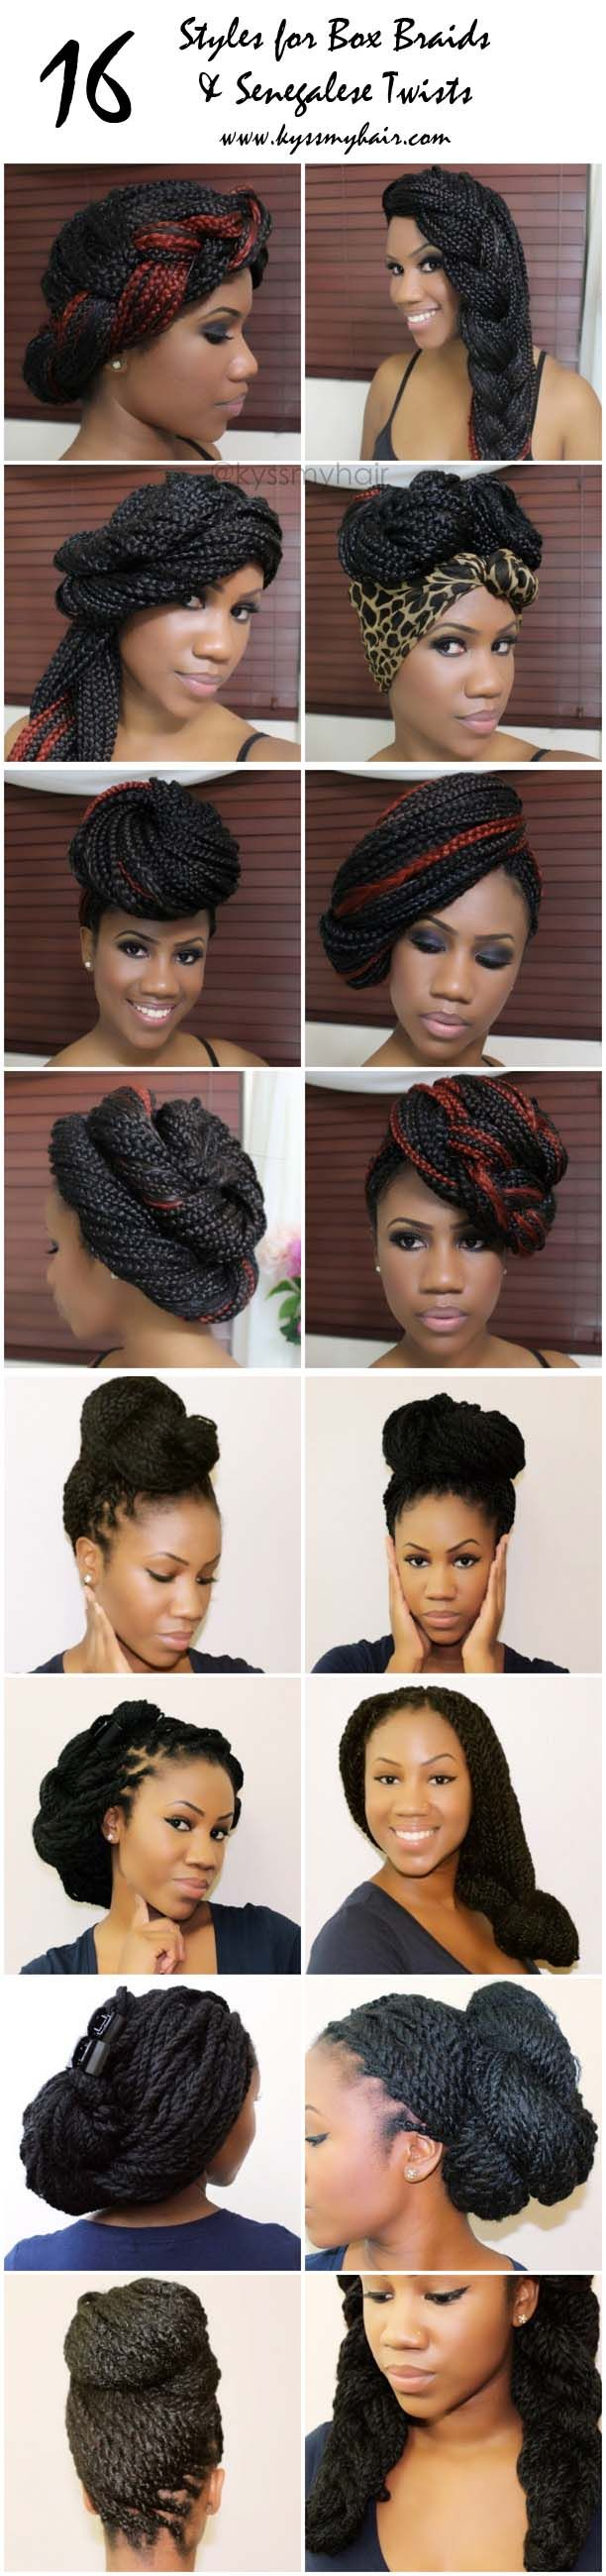 16 Styles For Box Braids And Senegalese Twists | Www.kyssmyhair.com Will Be